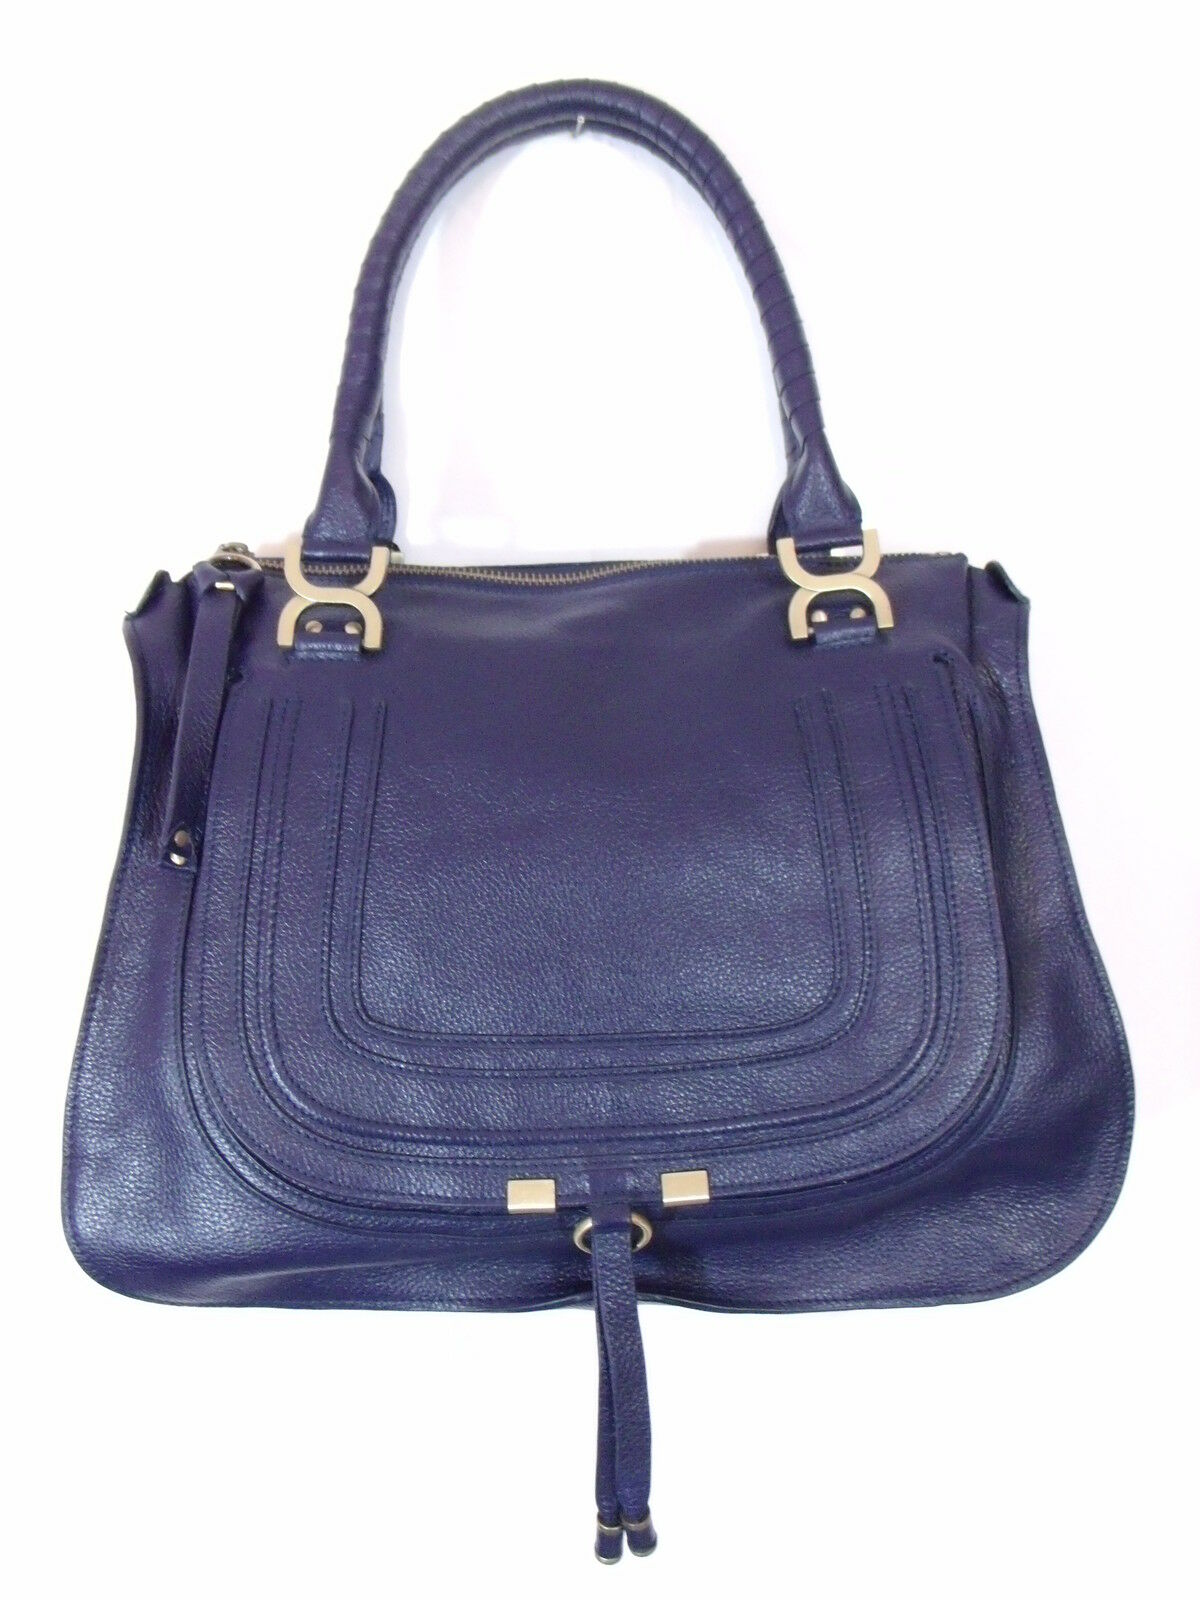 BESSO BLUE LEATHER LUXURY ITALIAN HANDBAG SHOULDER BAG TOTE PURSE B12